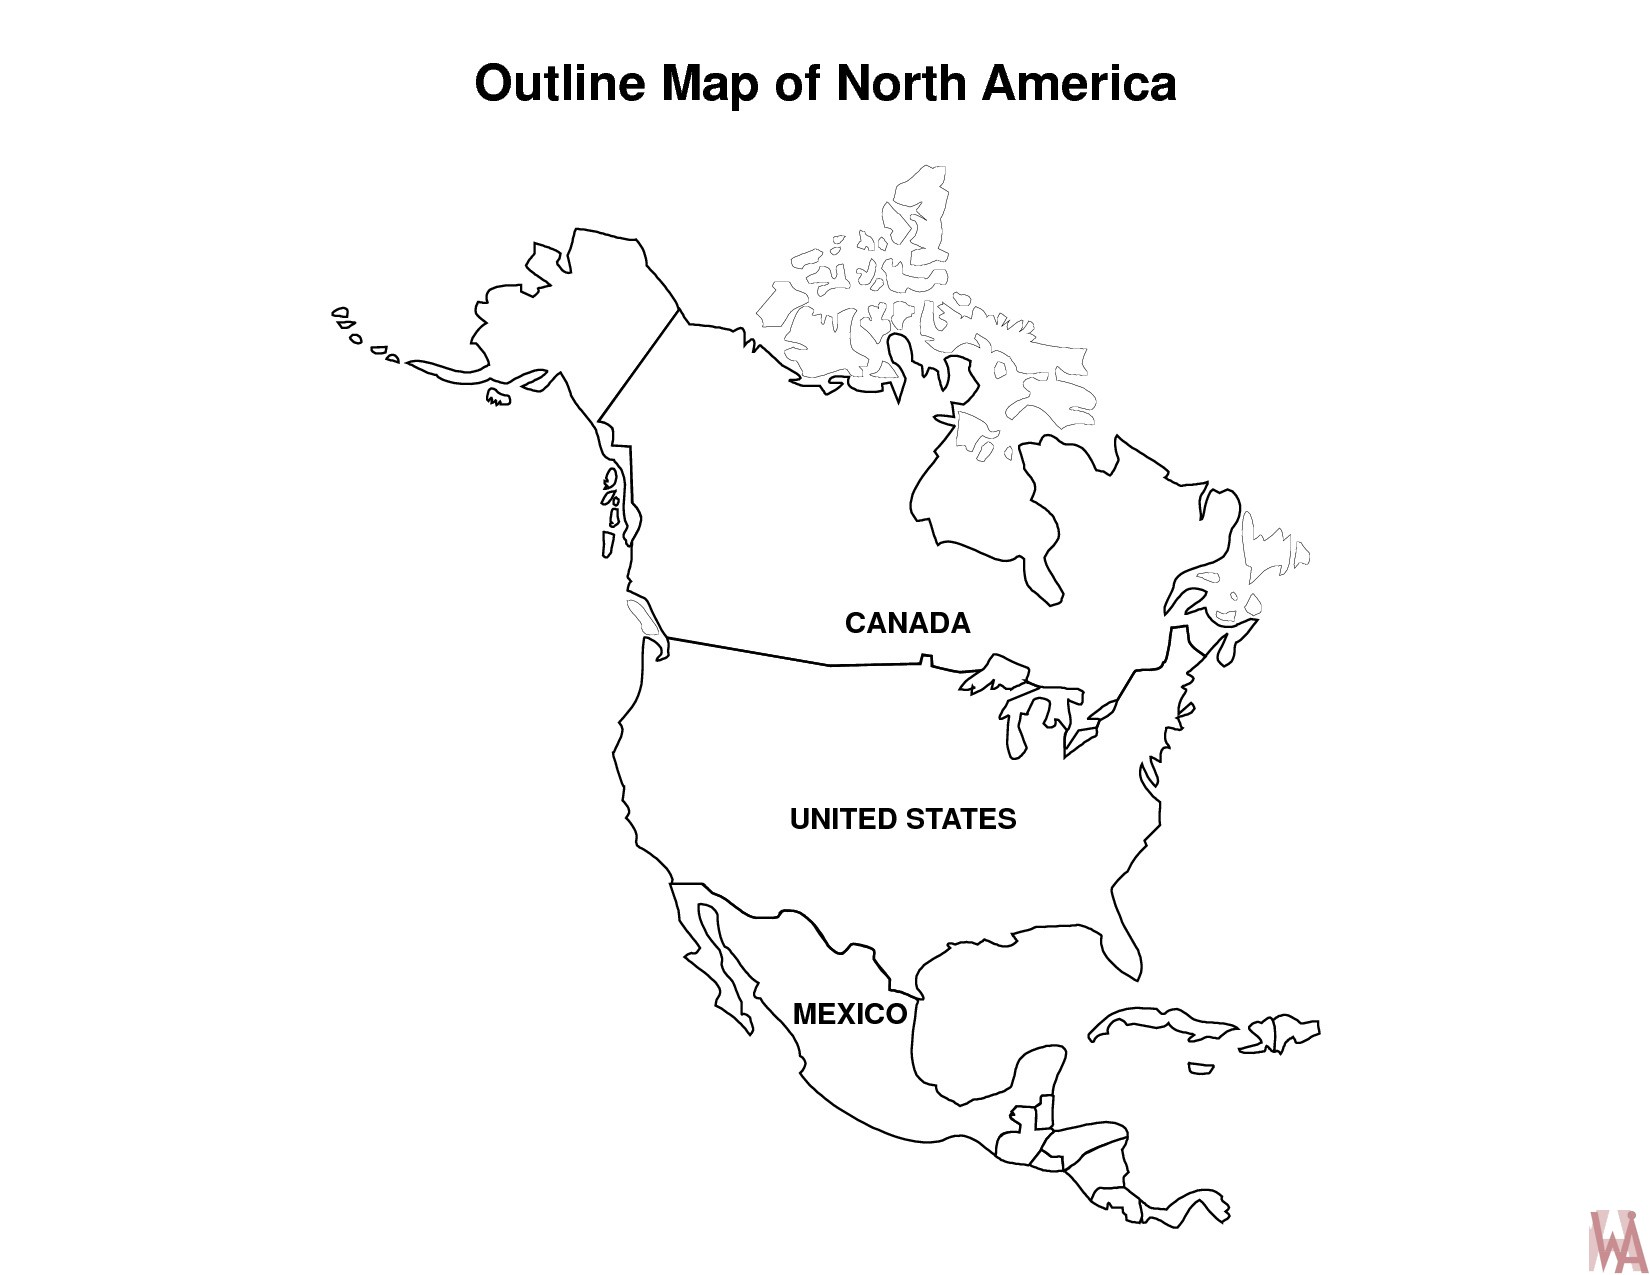 Blank outline map of North America | WhatsAnswer